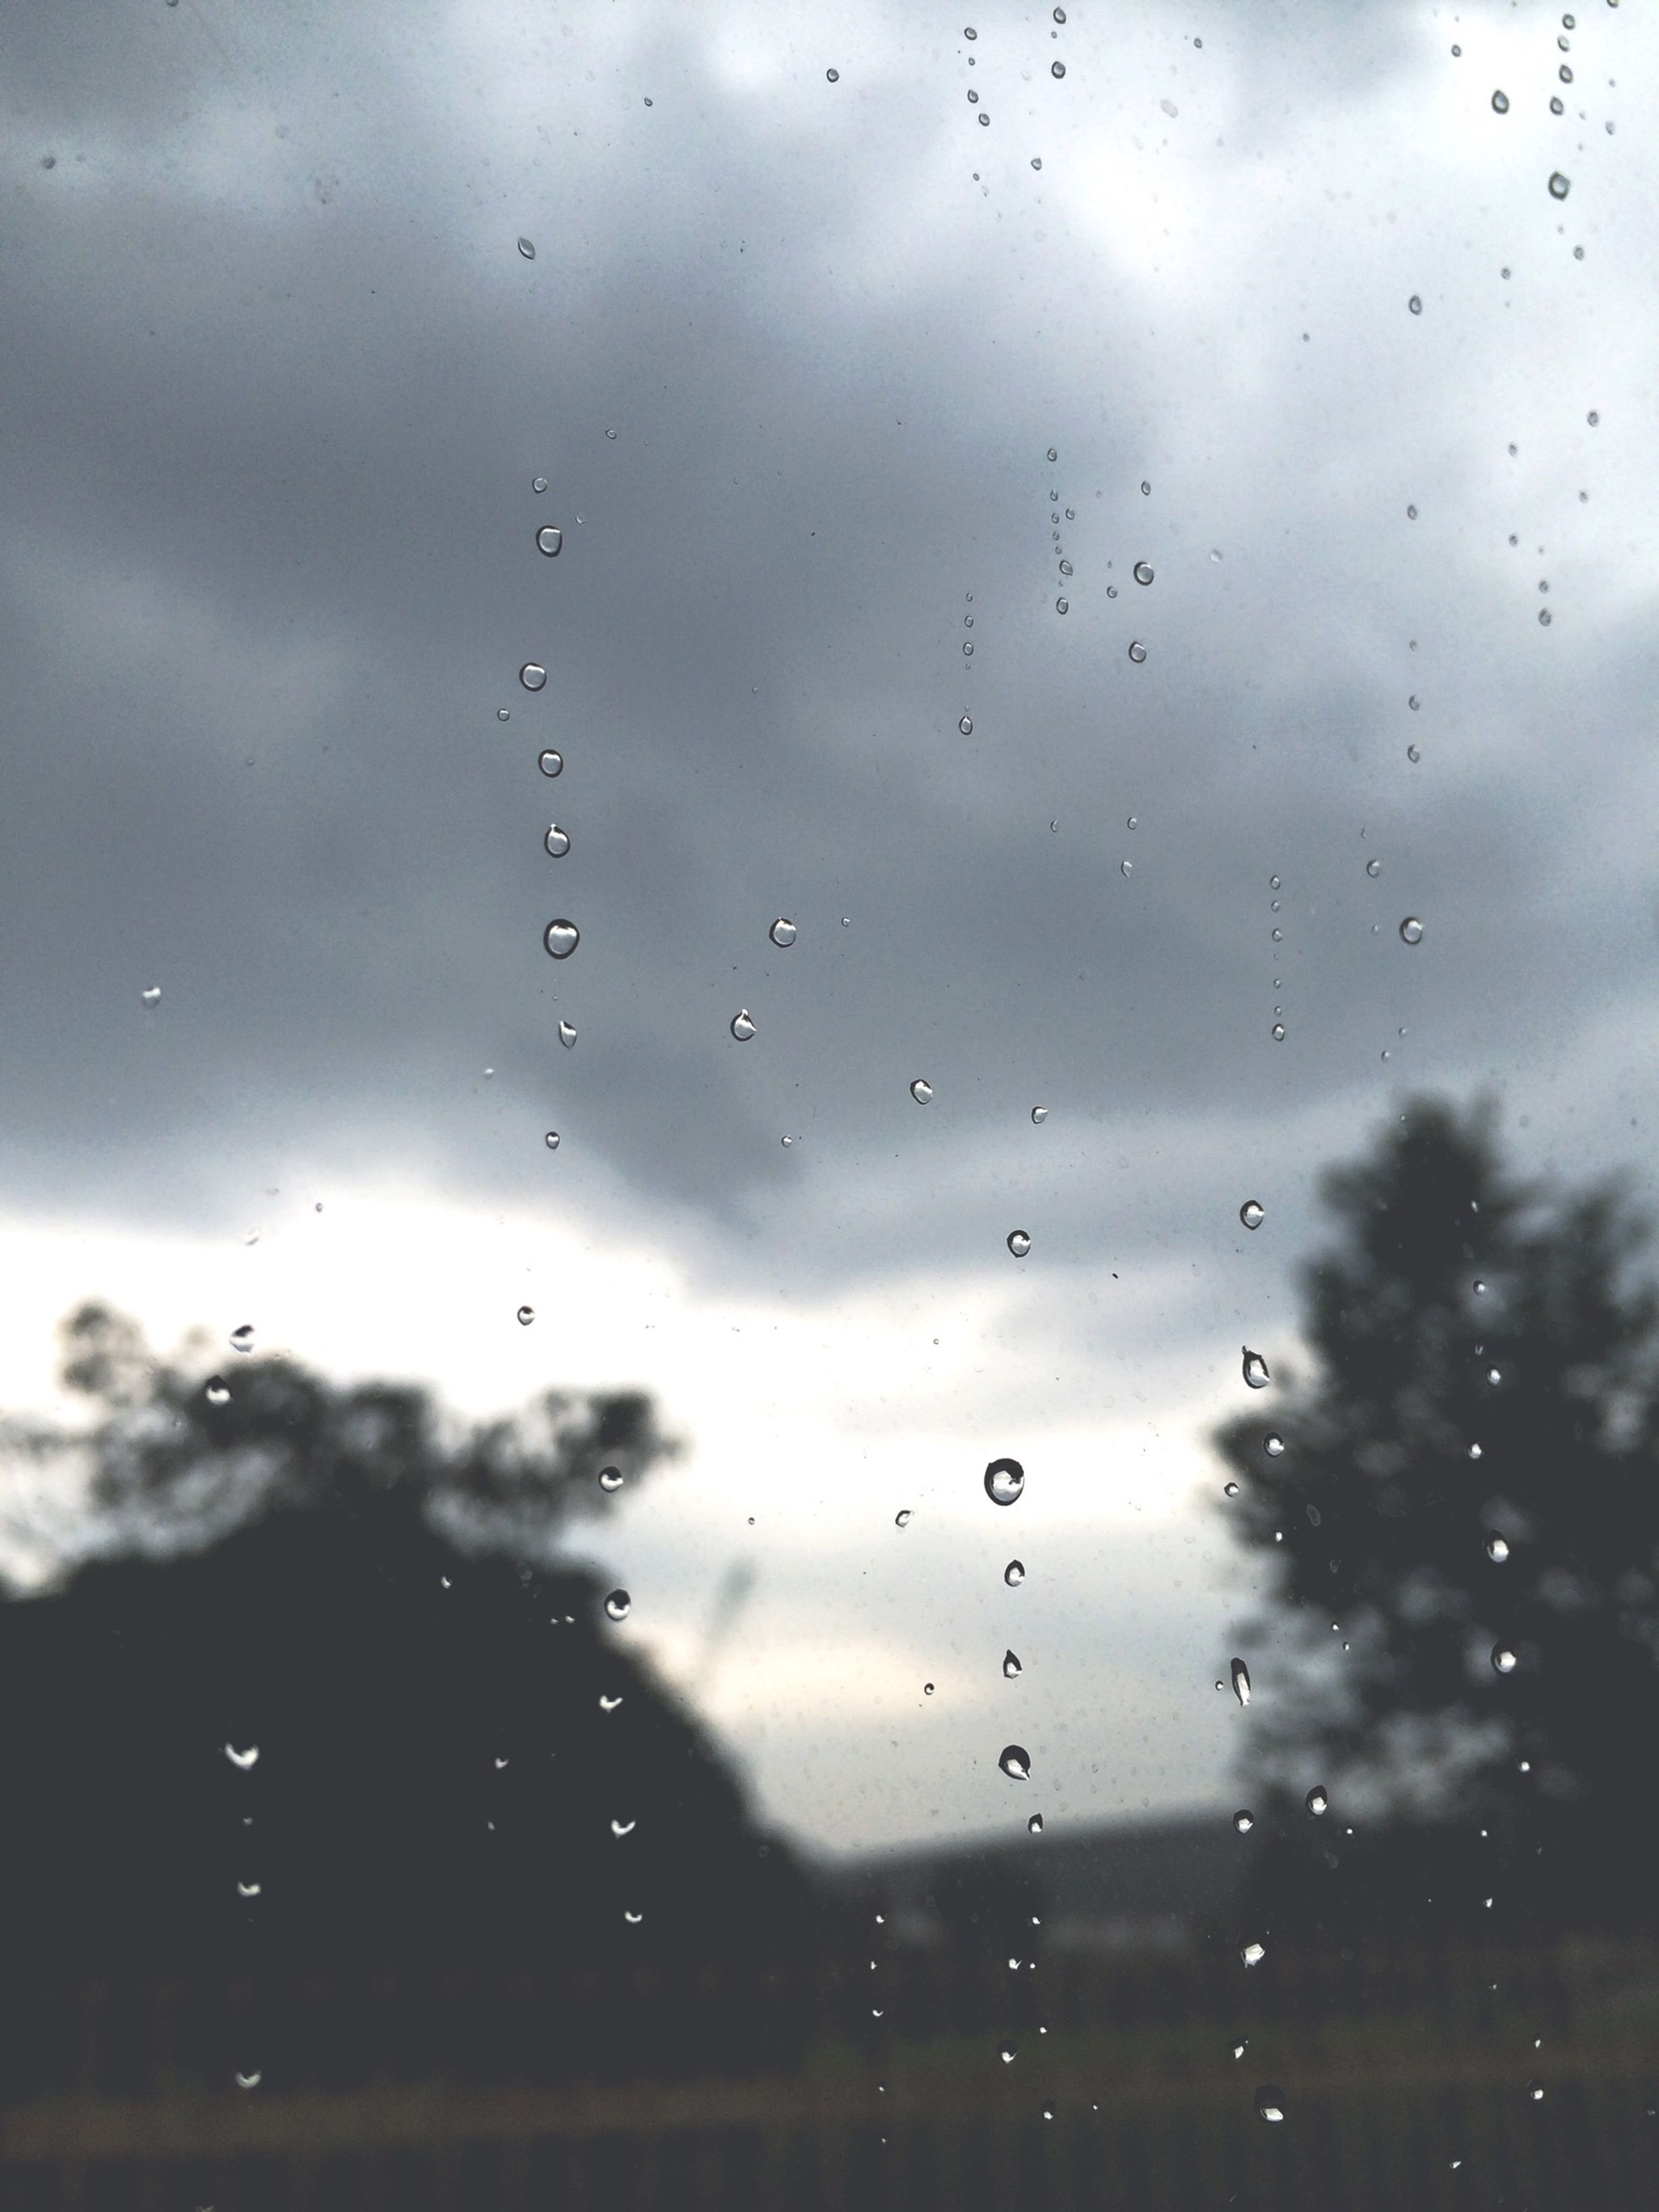 drop, wet, rain, window, water, transparent, indoors, raindrop, glass - material, weather, focus on foreground, season, full frame, backgrounds, glass, sky, droplet, water drop, monsoon, close-up